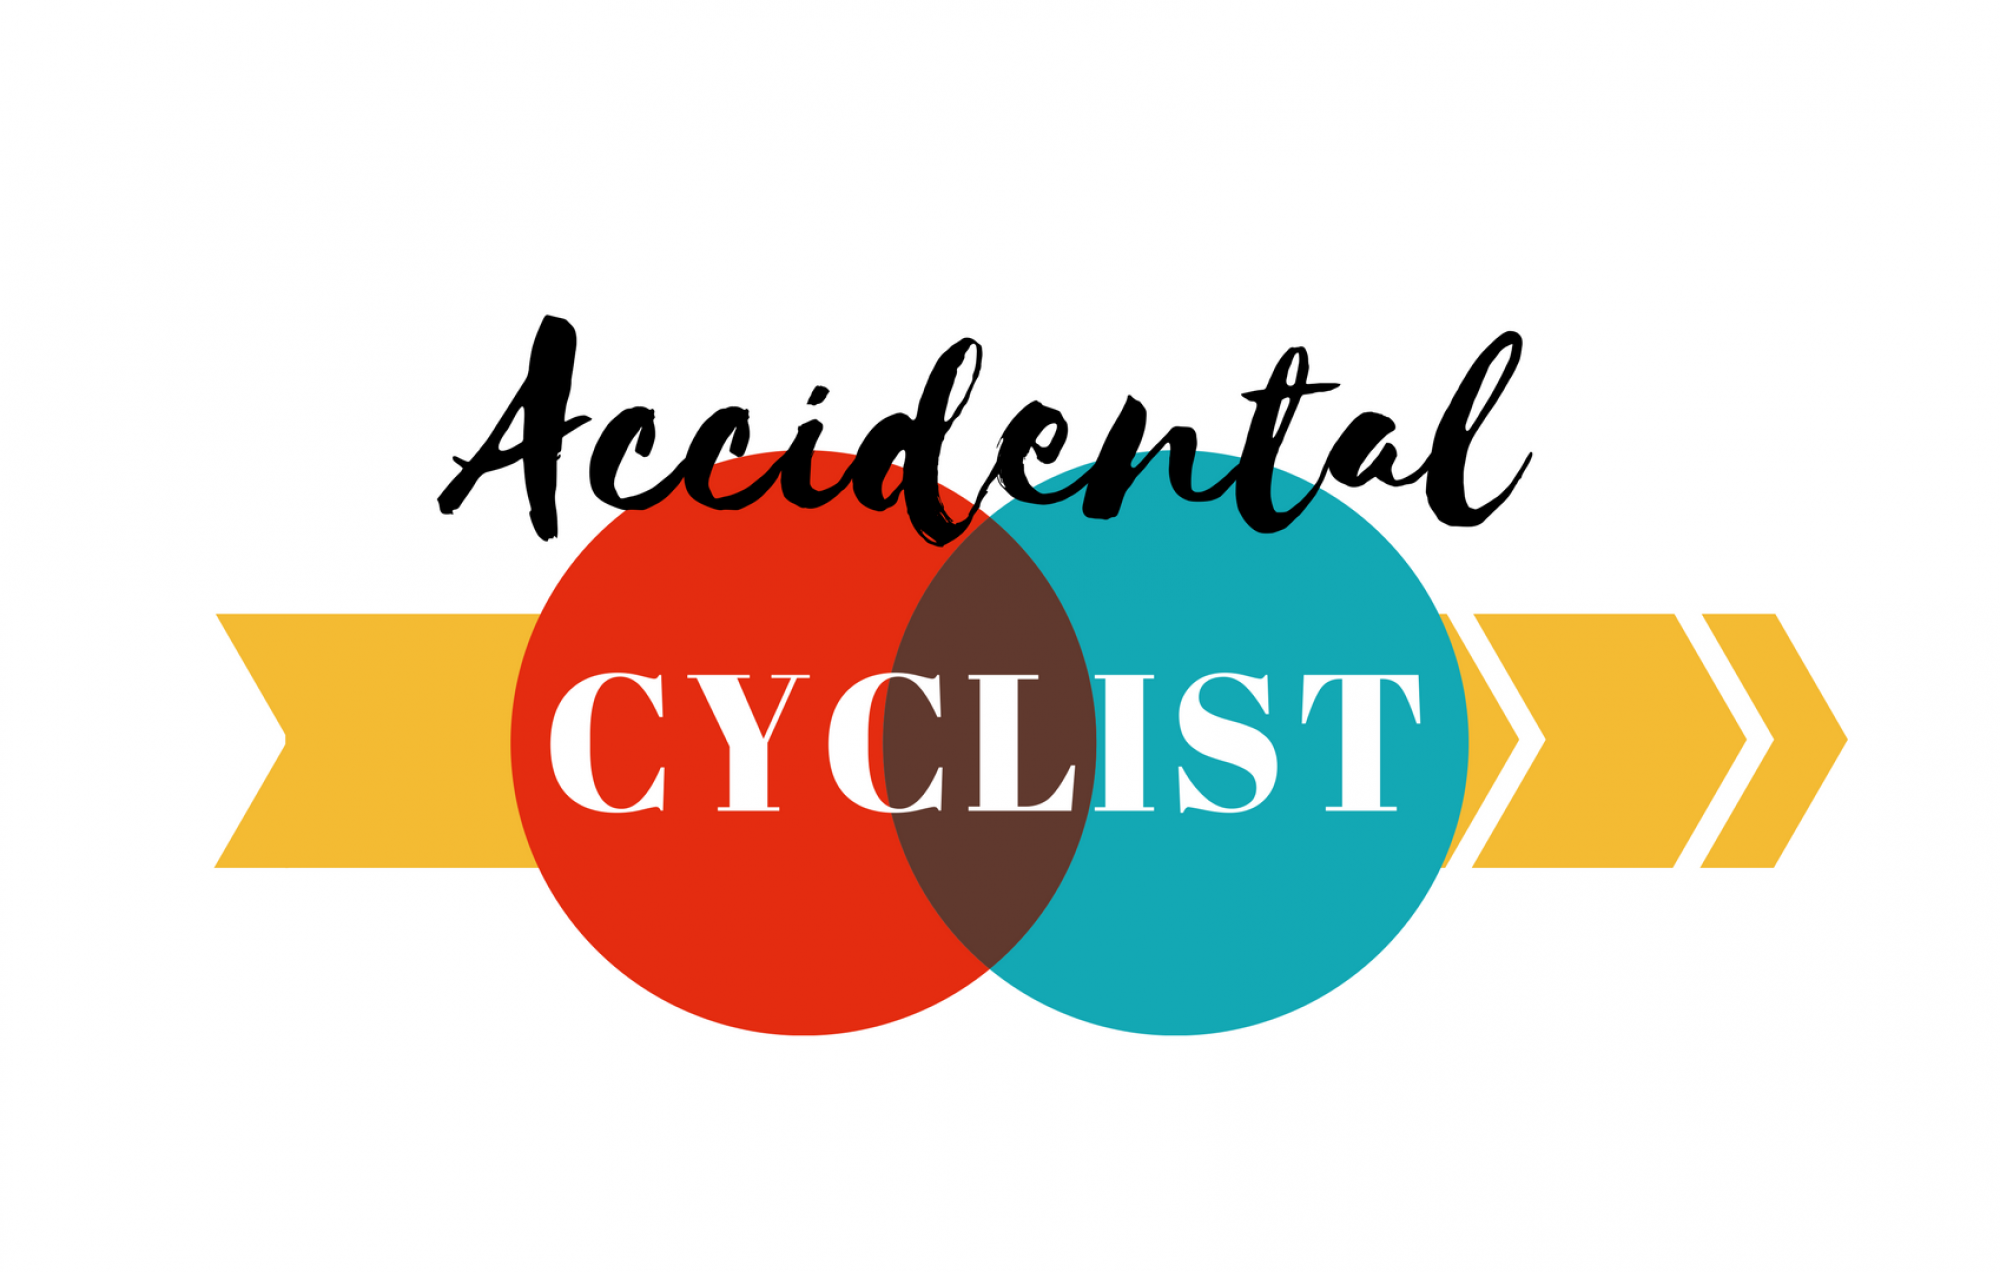 Accidental Cyclist